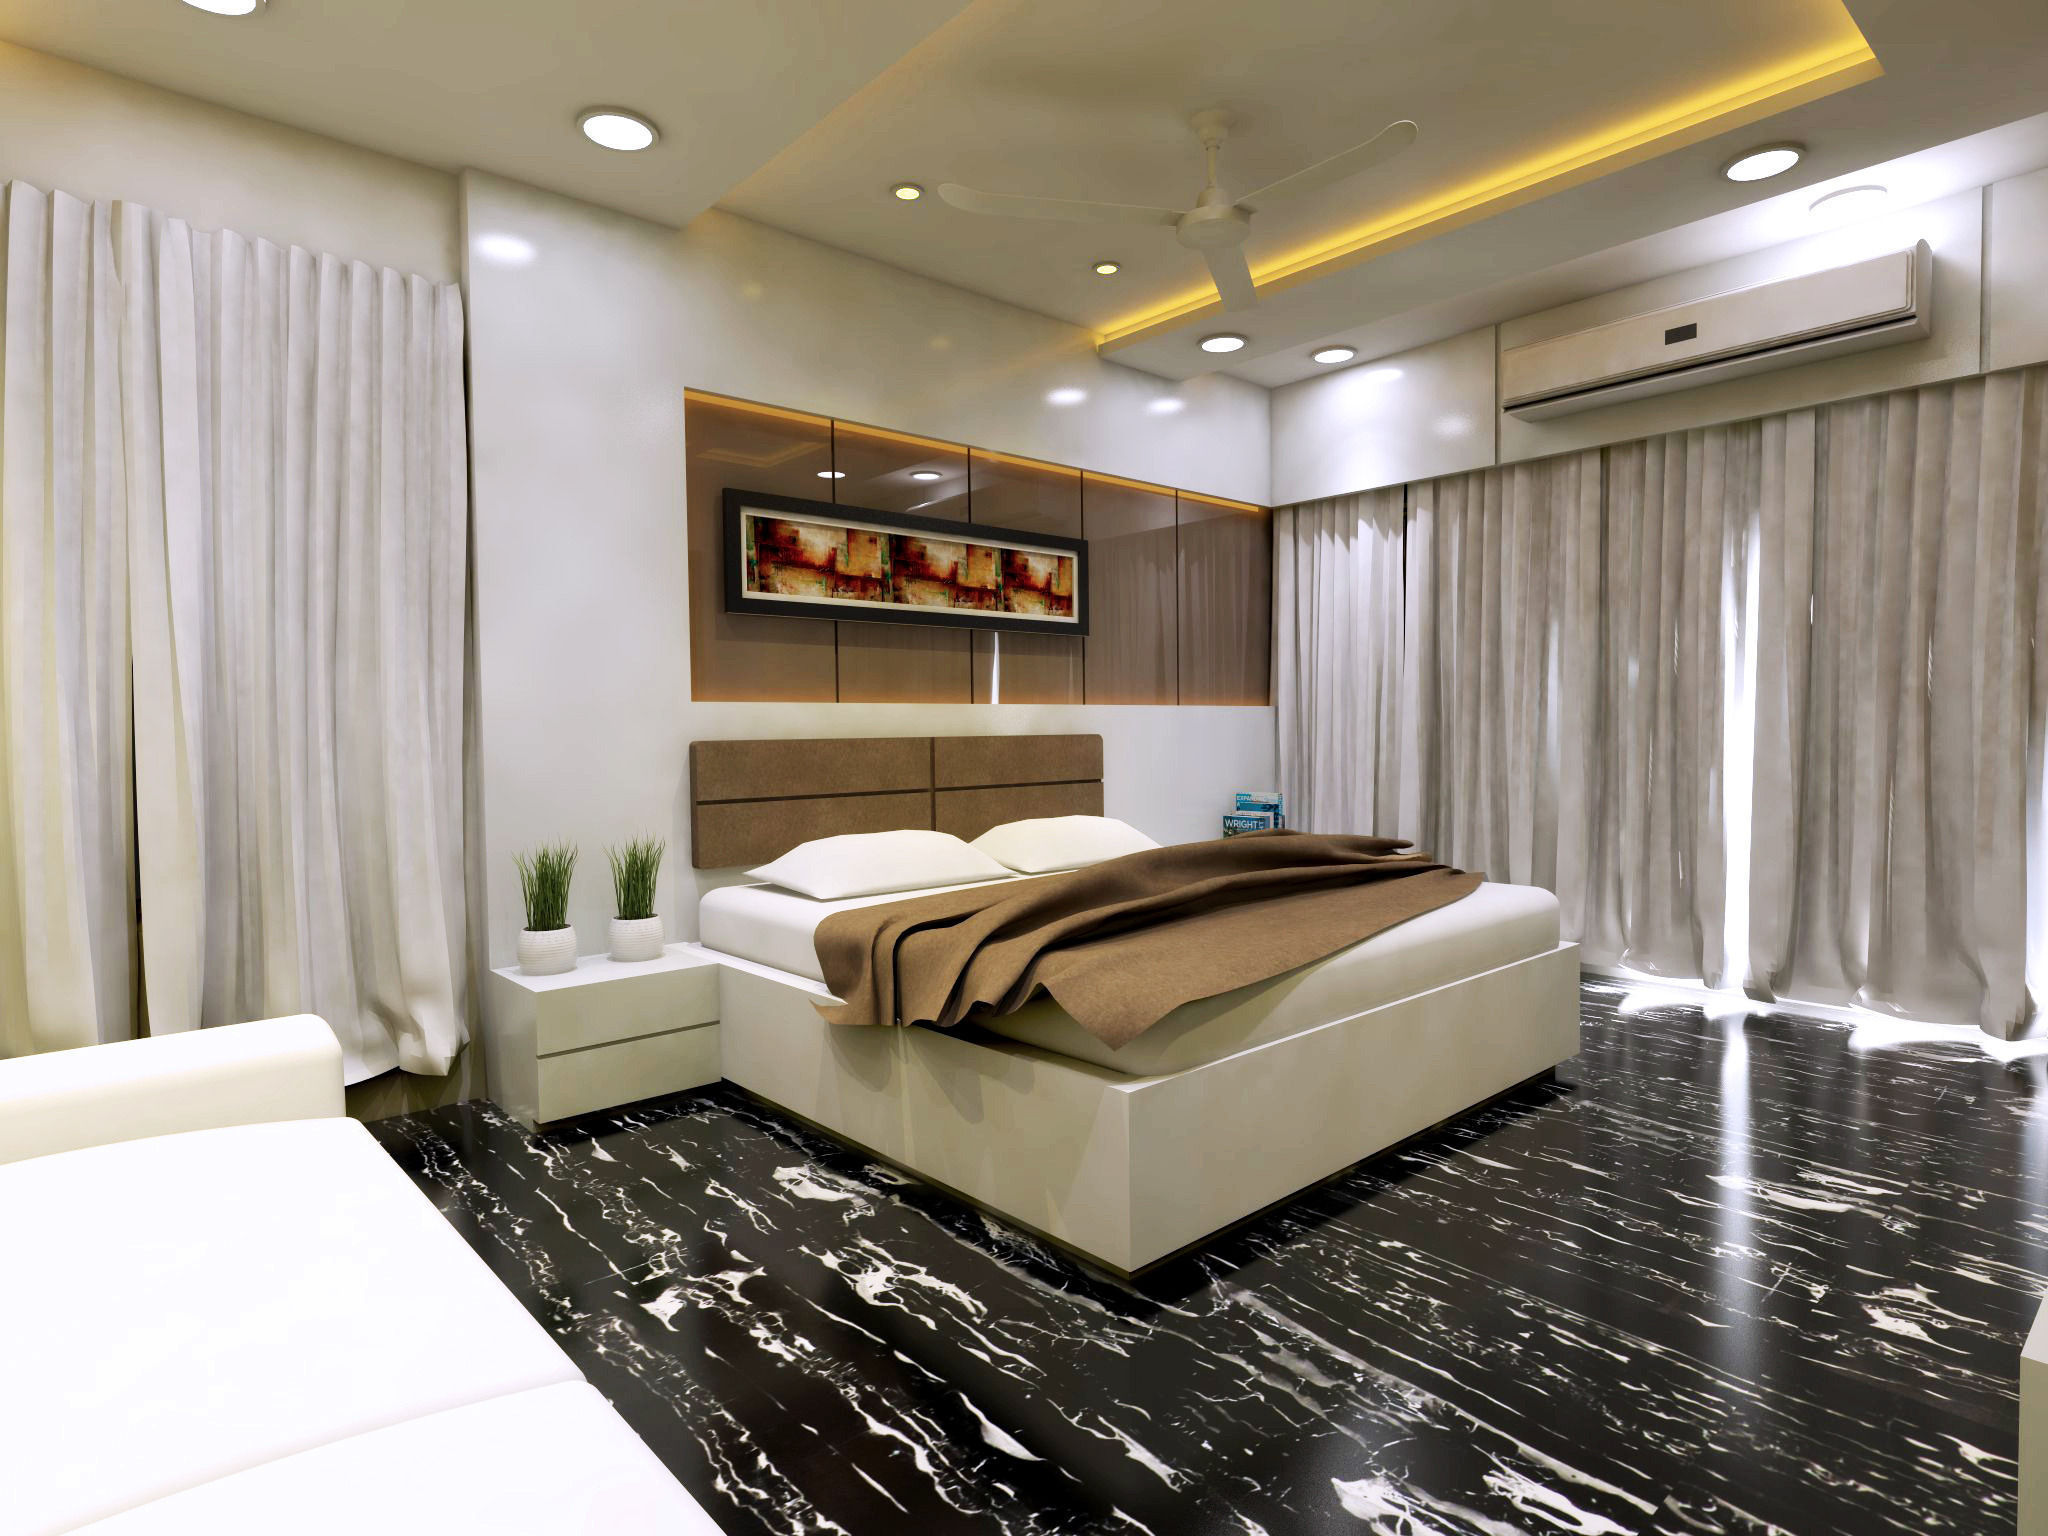 Modern Bedroom Interior Vray Rendered Model Skp 1